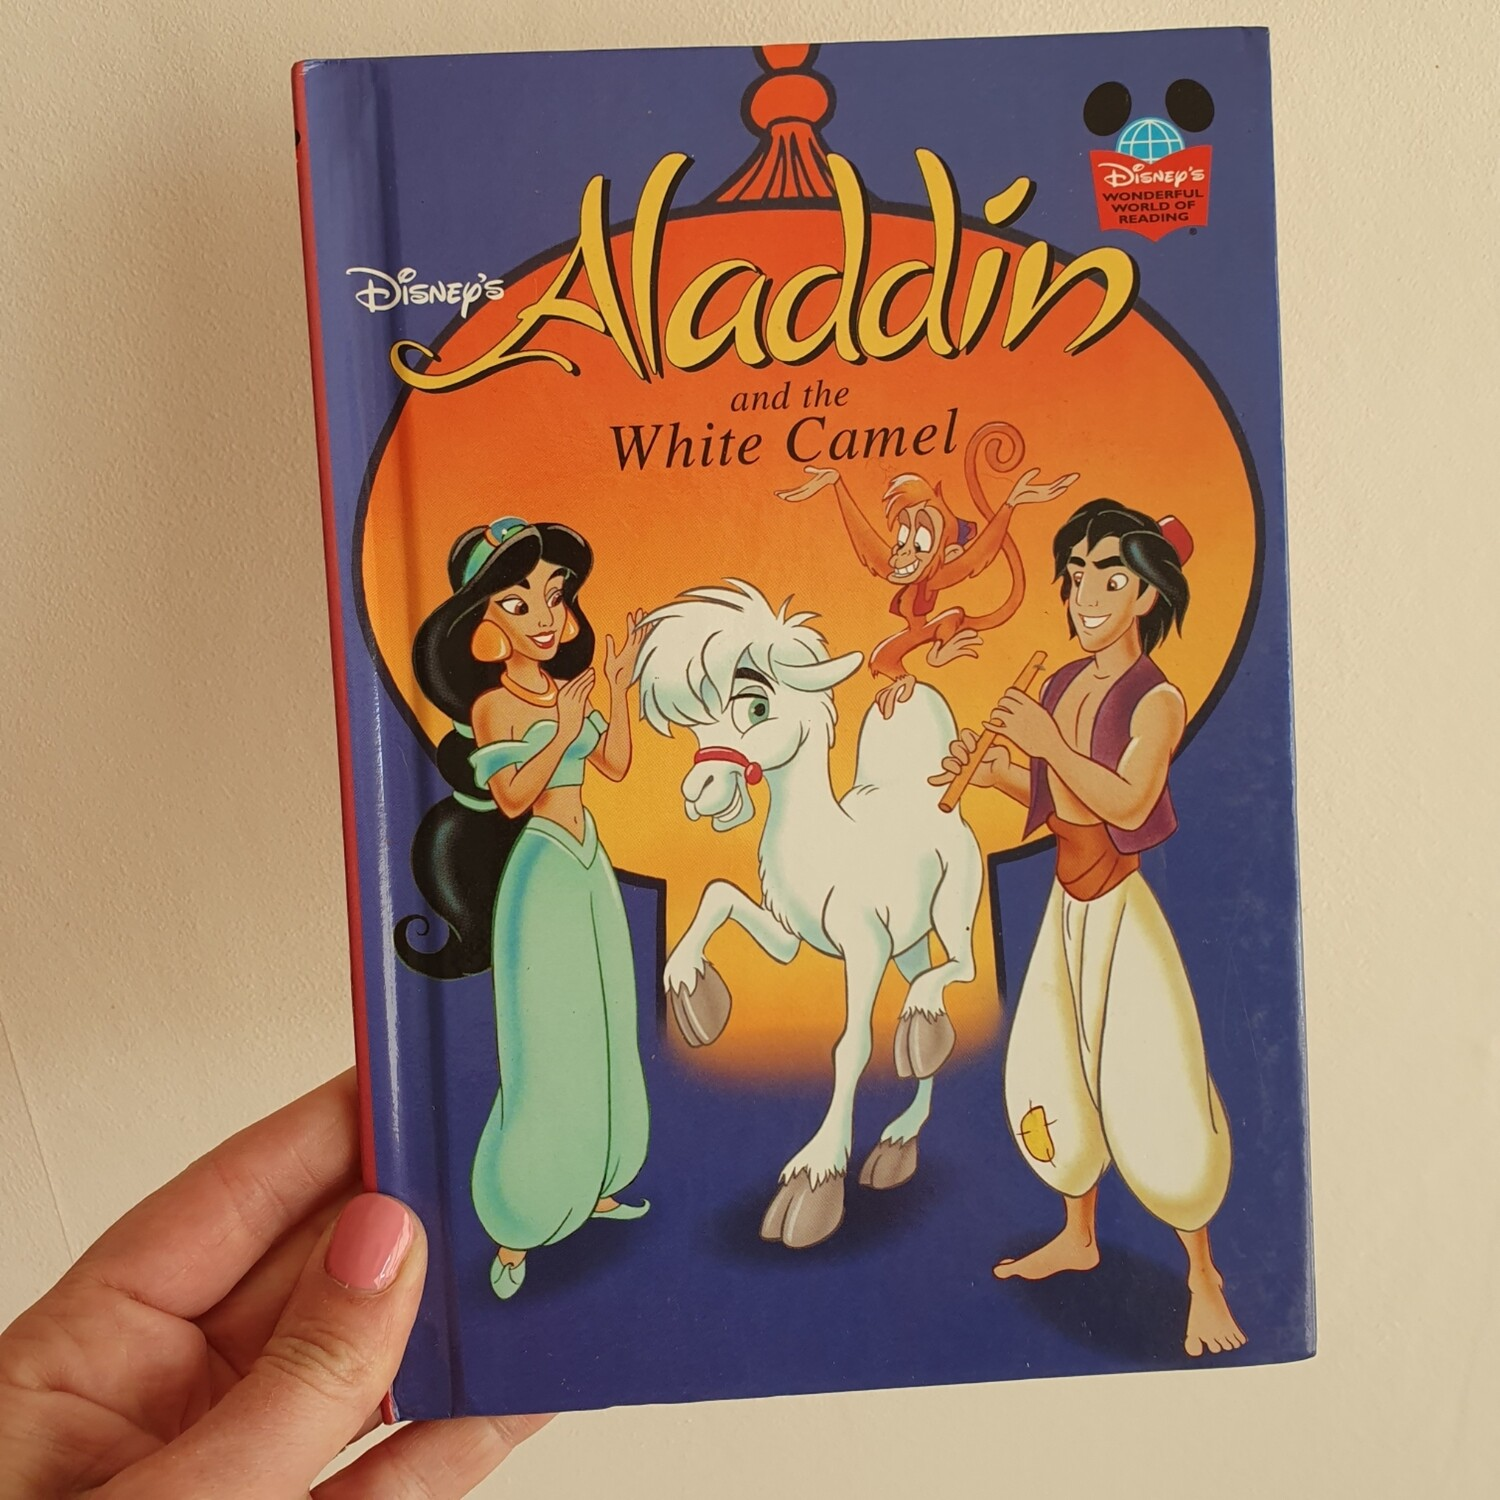 Aladdin and the white camel Notebook